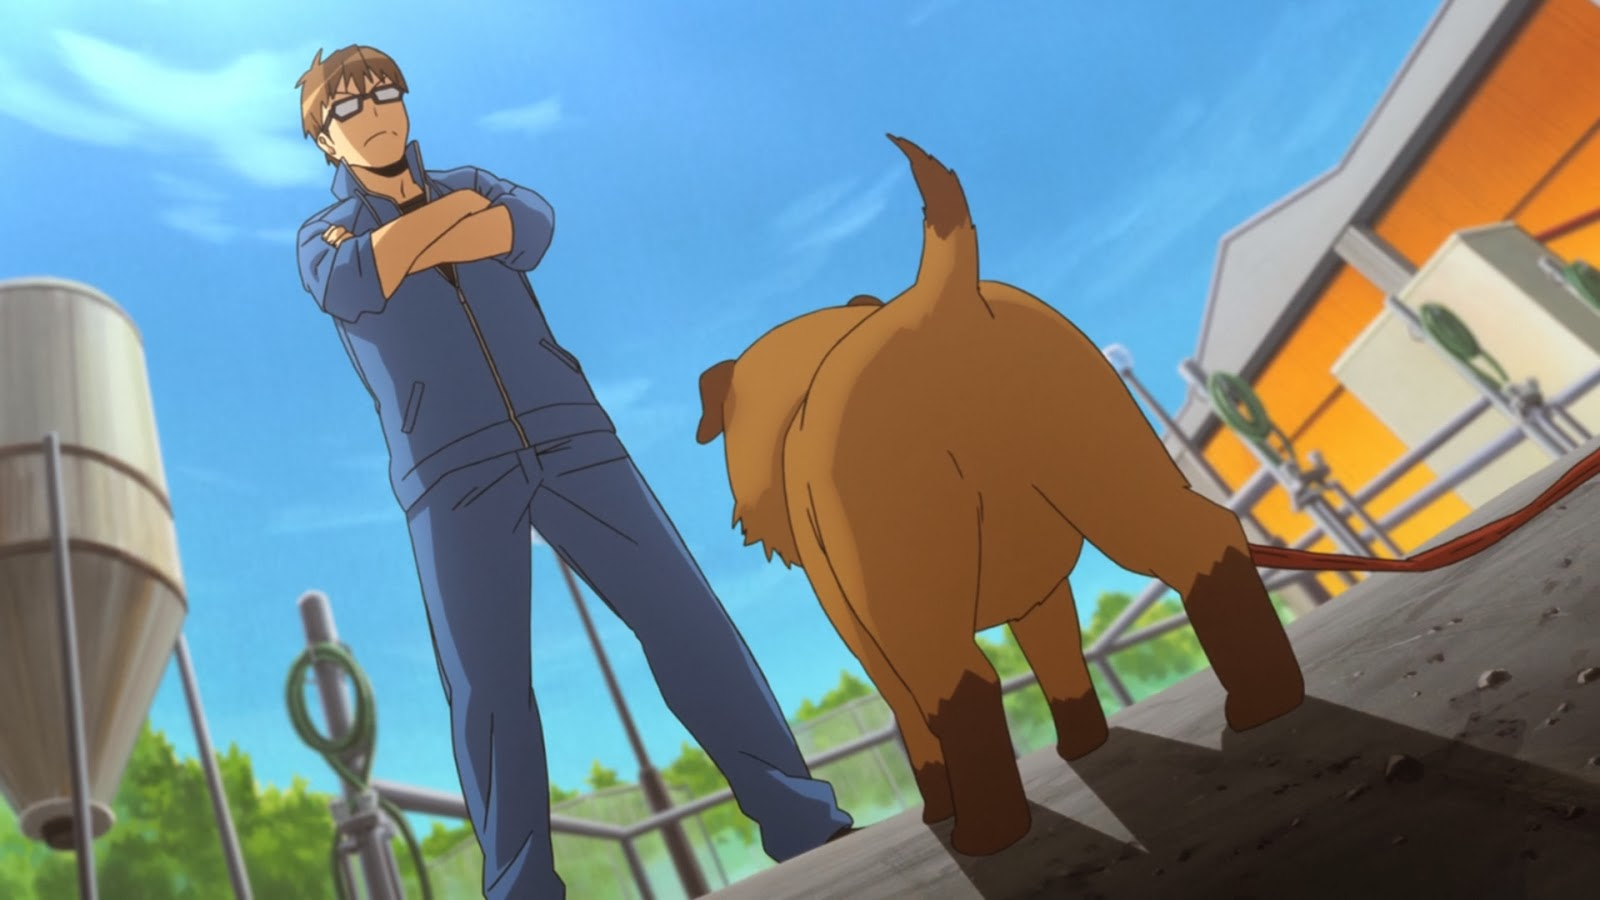 download silver spoon part 2